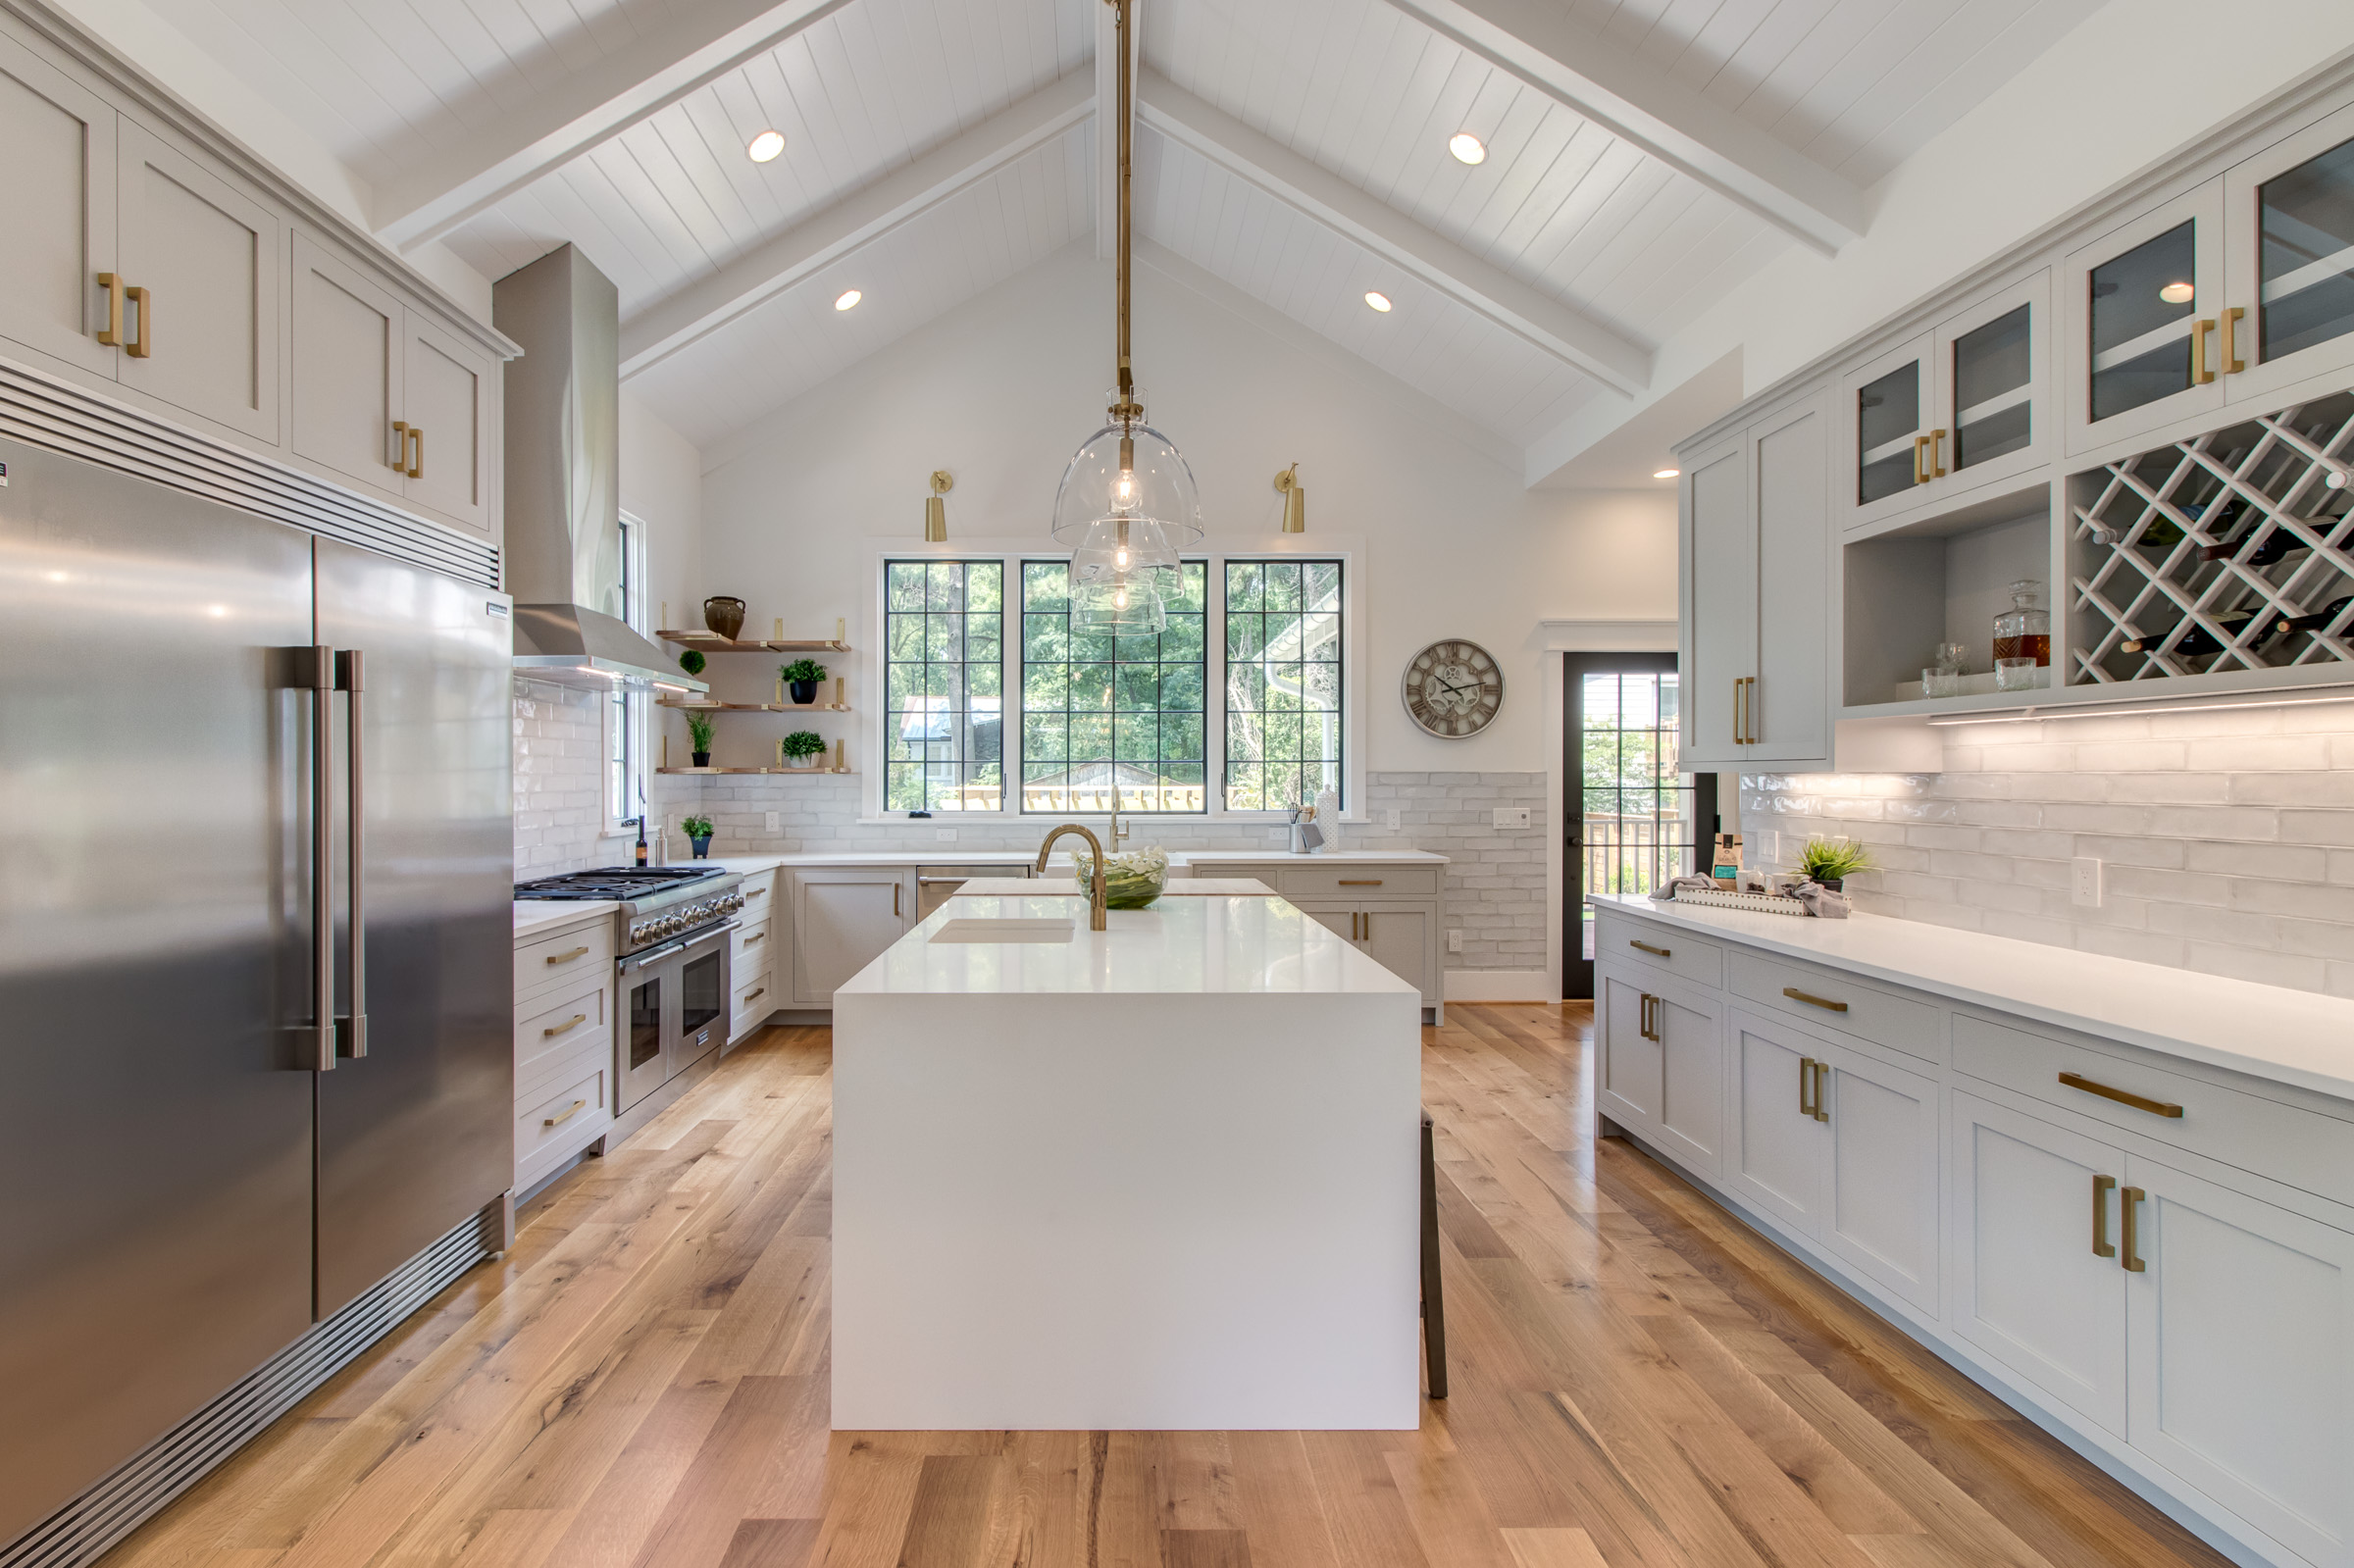 Modern kitchen with vaulted ceilings and waterfall counter top.